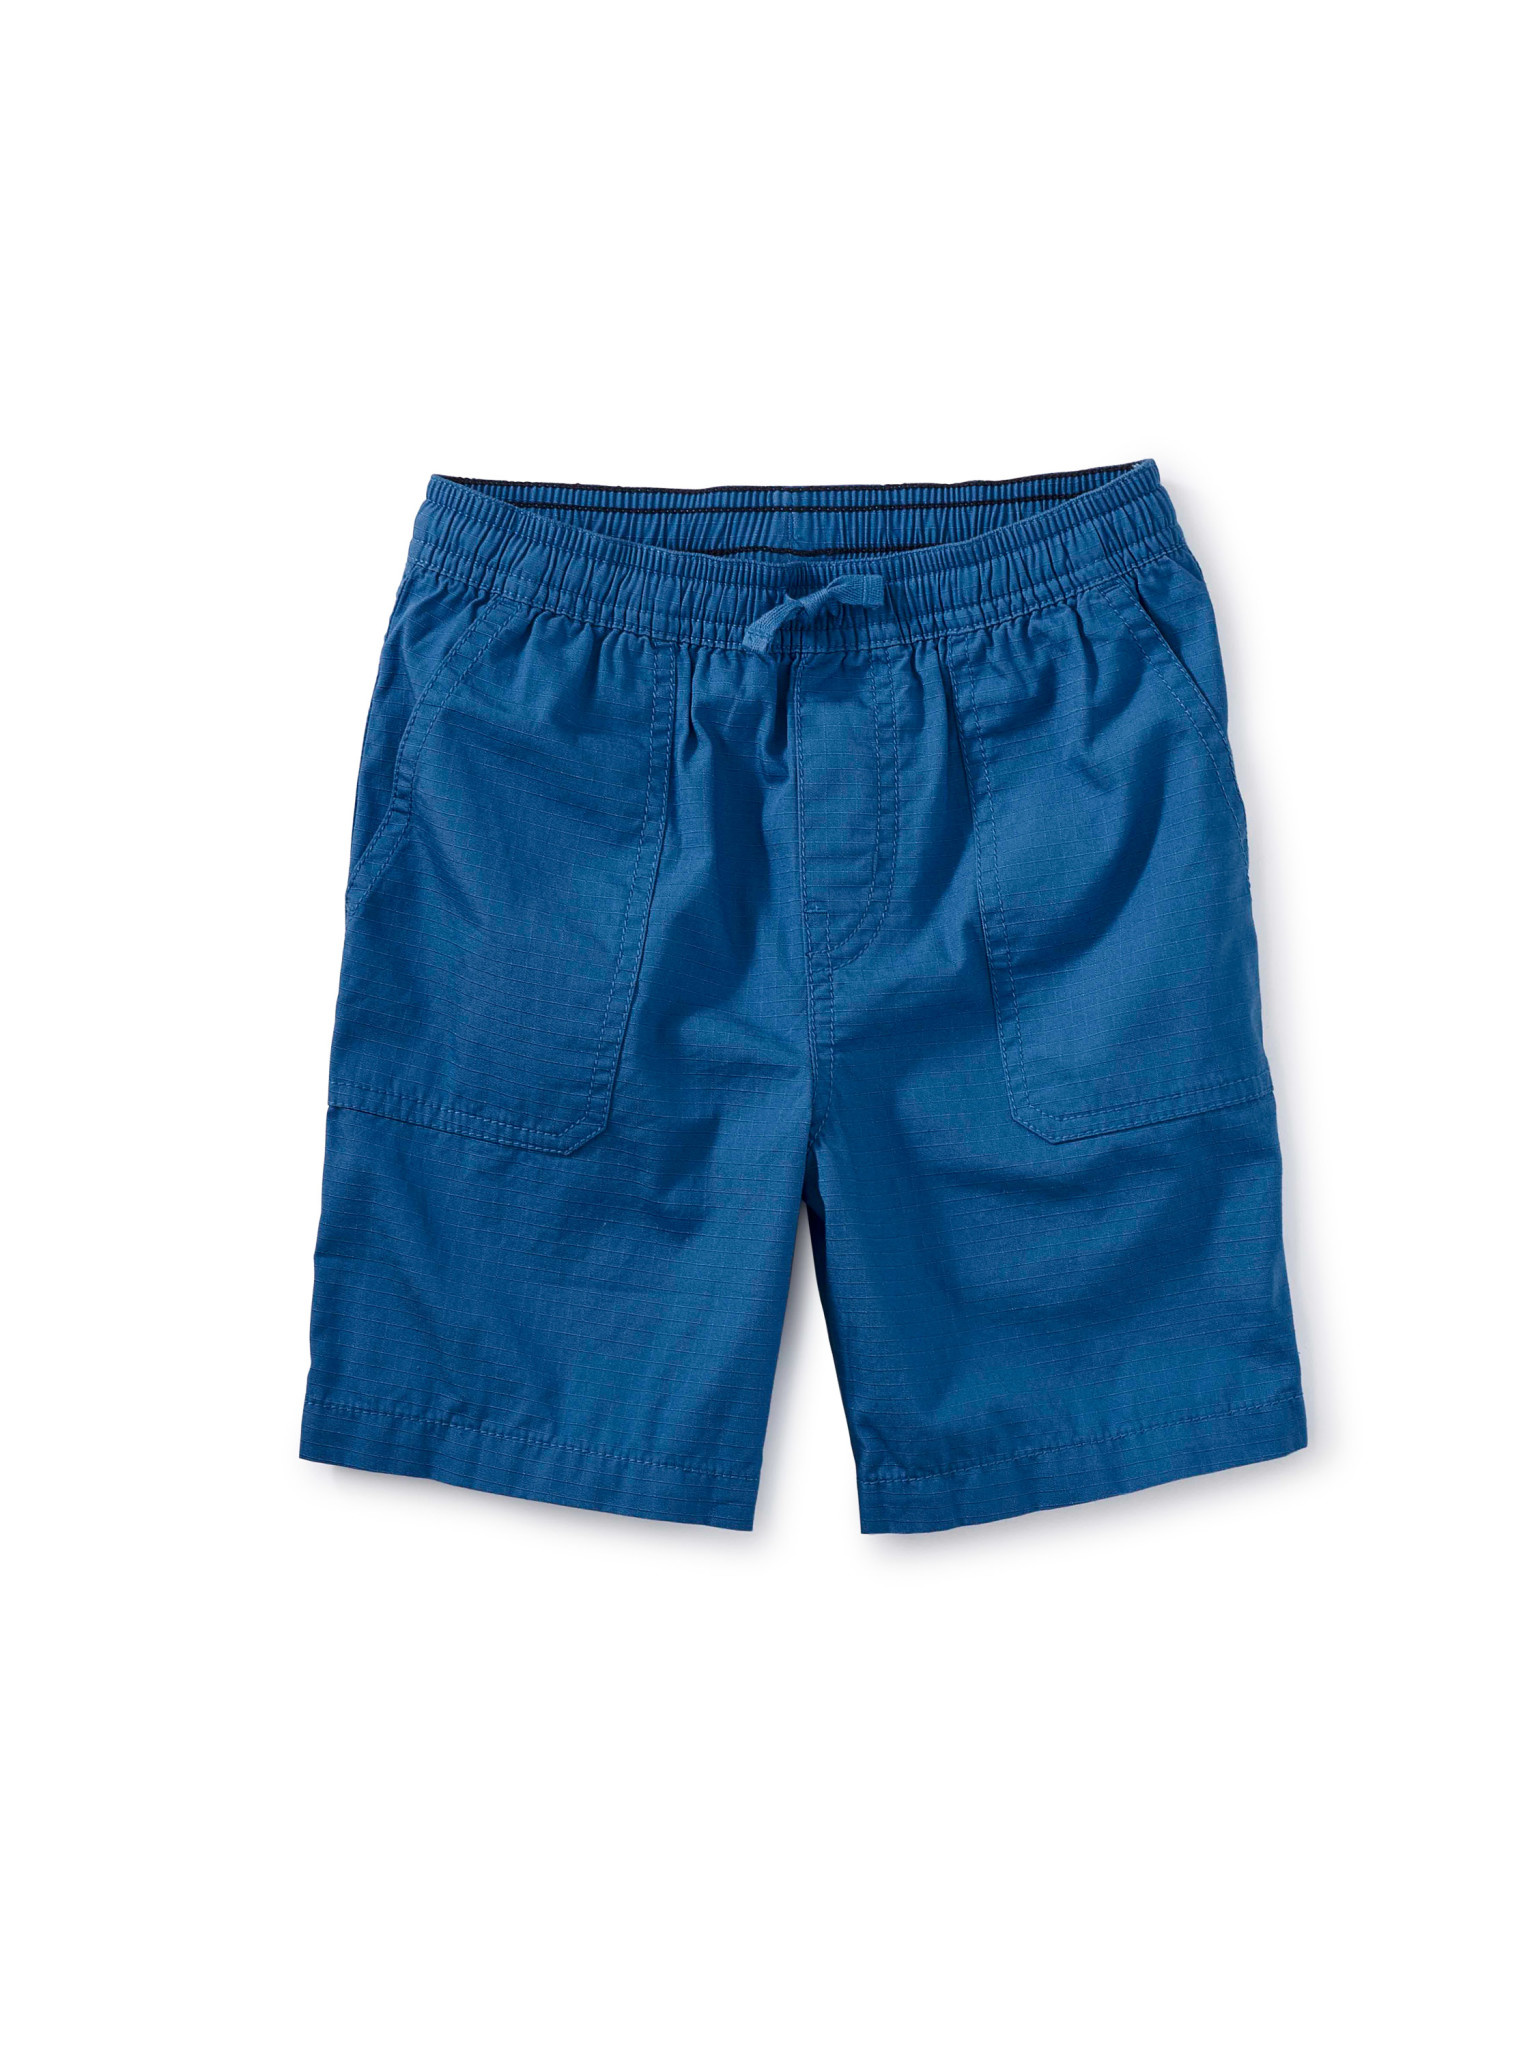 Tea Collection Imperial Ripstop Shorts